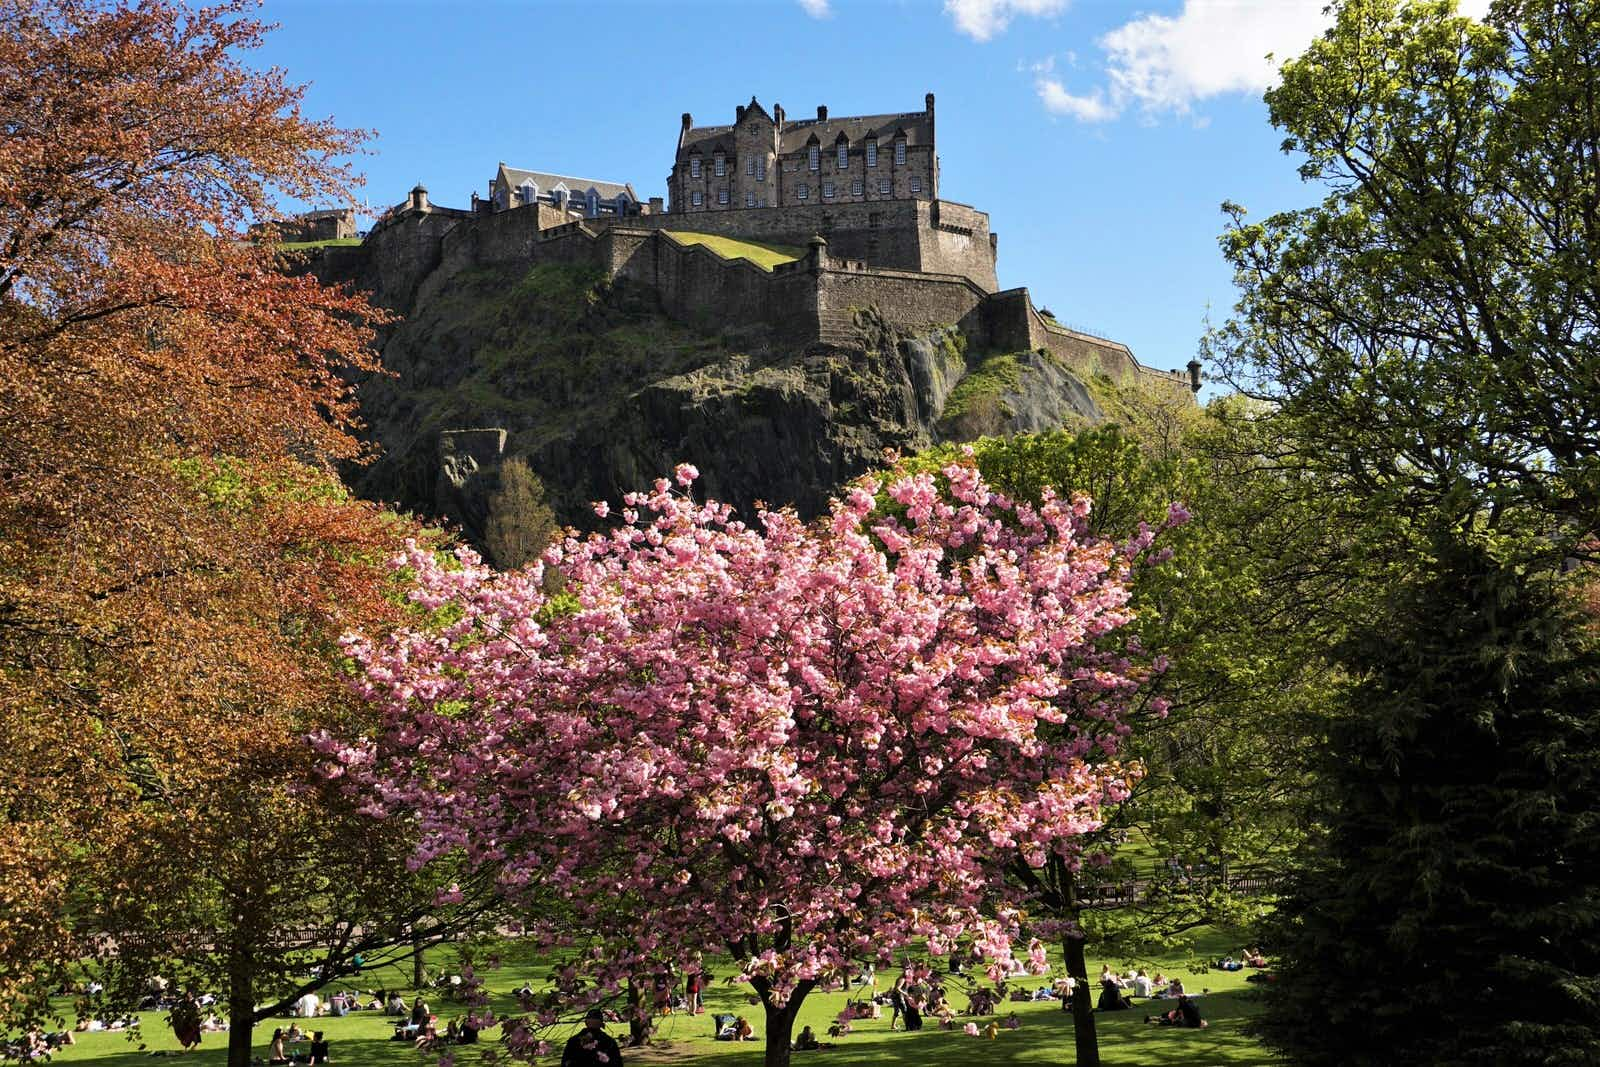 Edinburgh Castle with some spring cherry blossom in the park beneath it